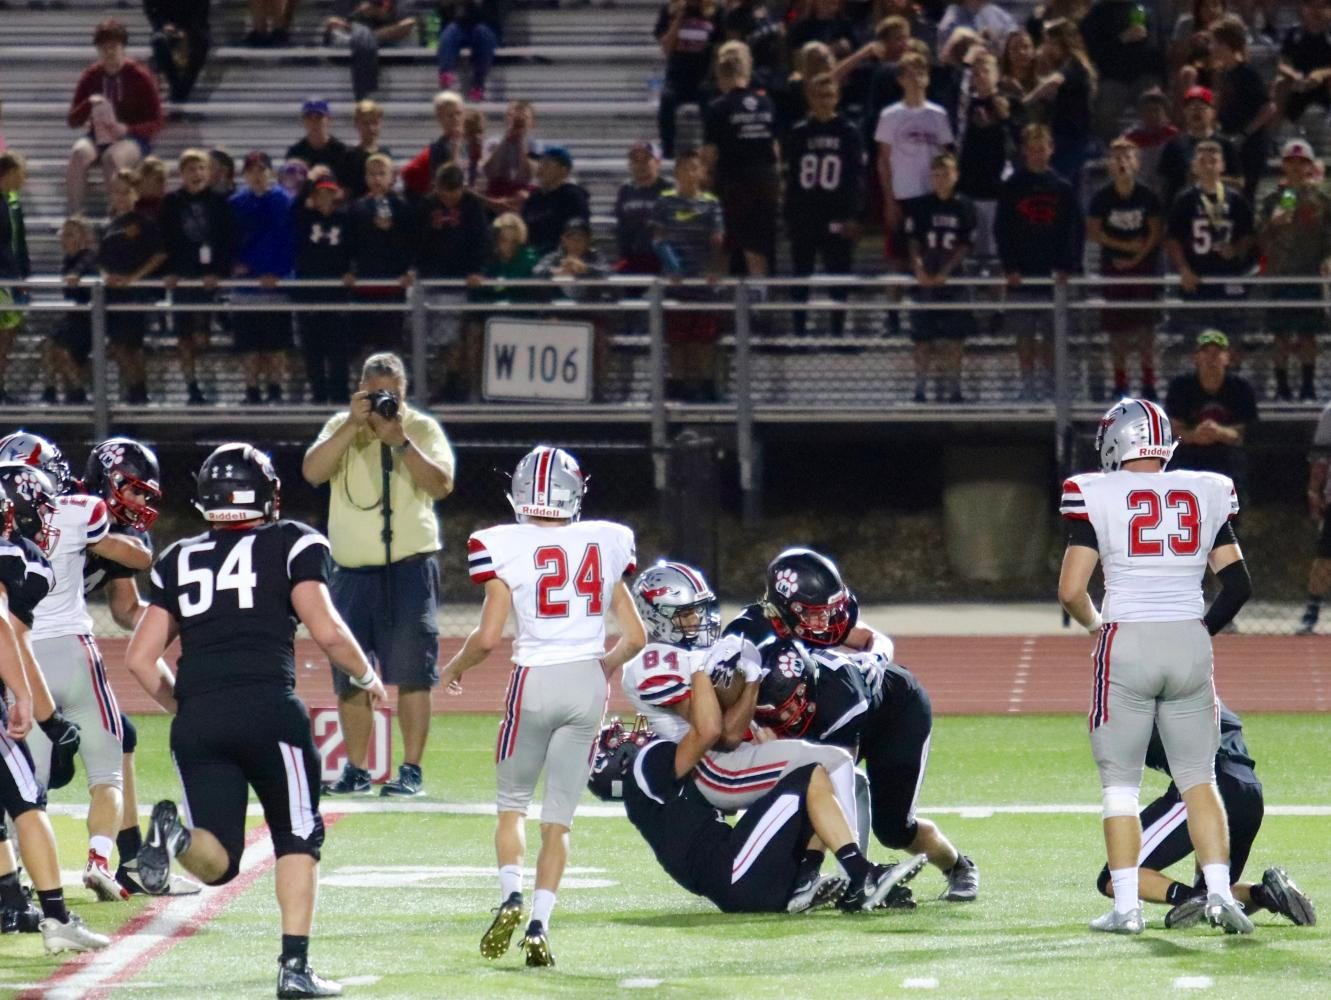 Zach Jones 18 holds on to the ball as three Linn-Mar players tackle him.